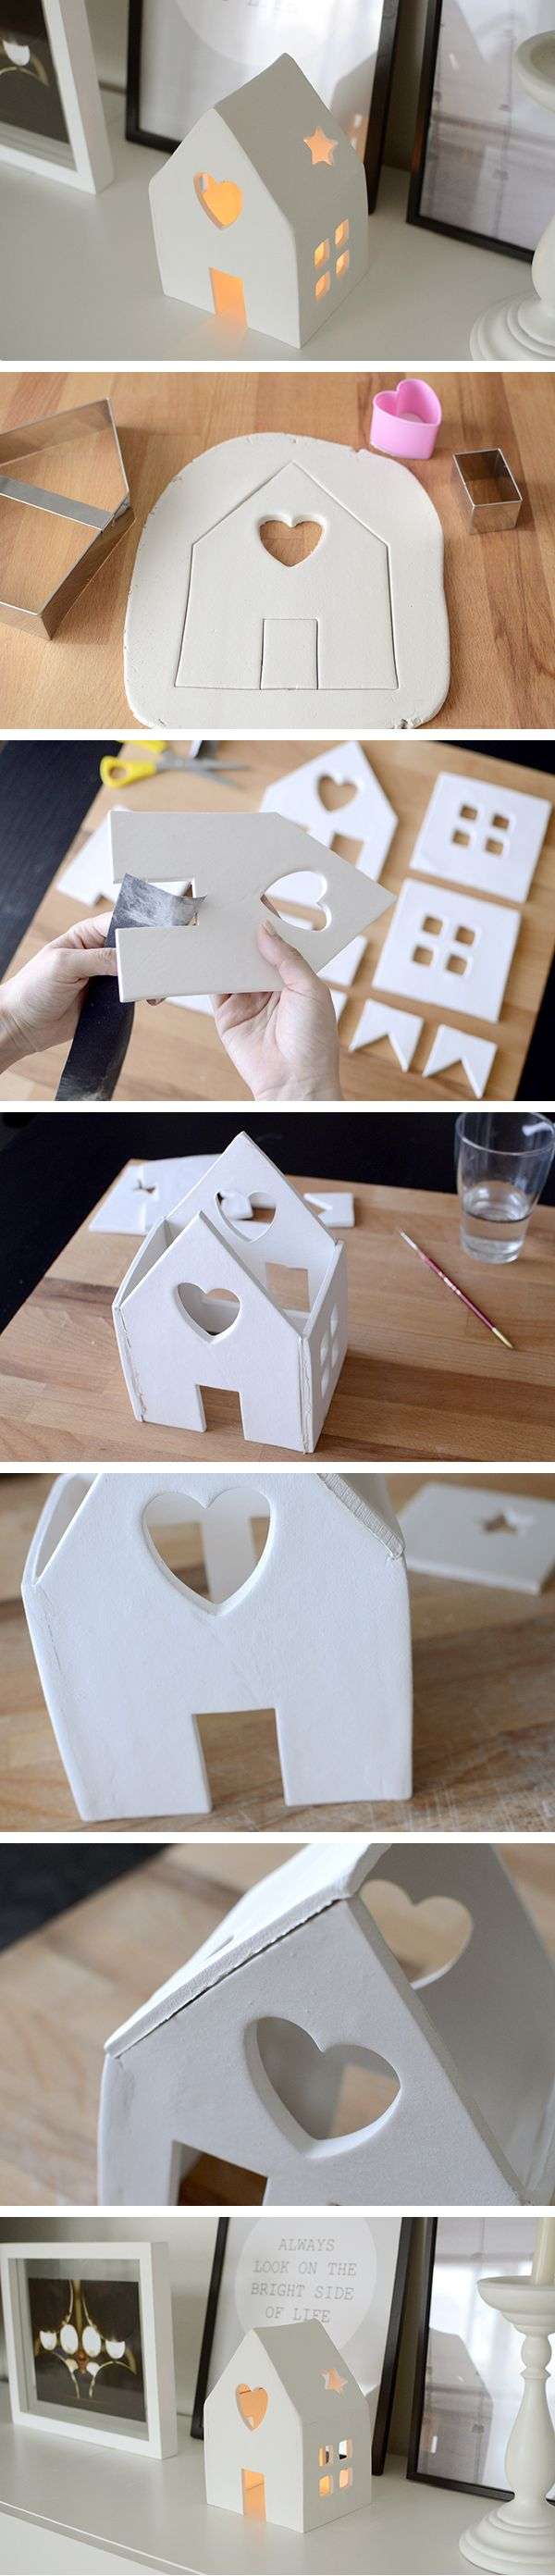 DIY: House candleholder with air dry clay